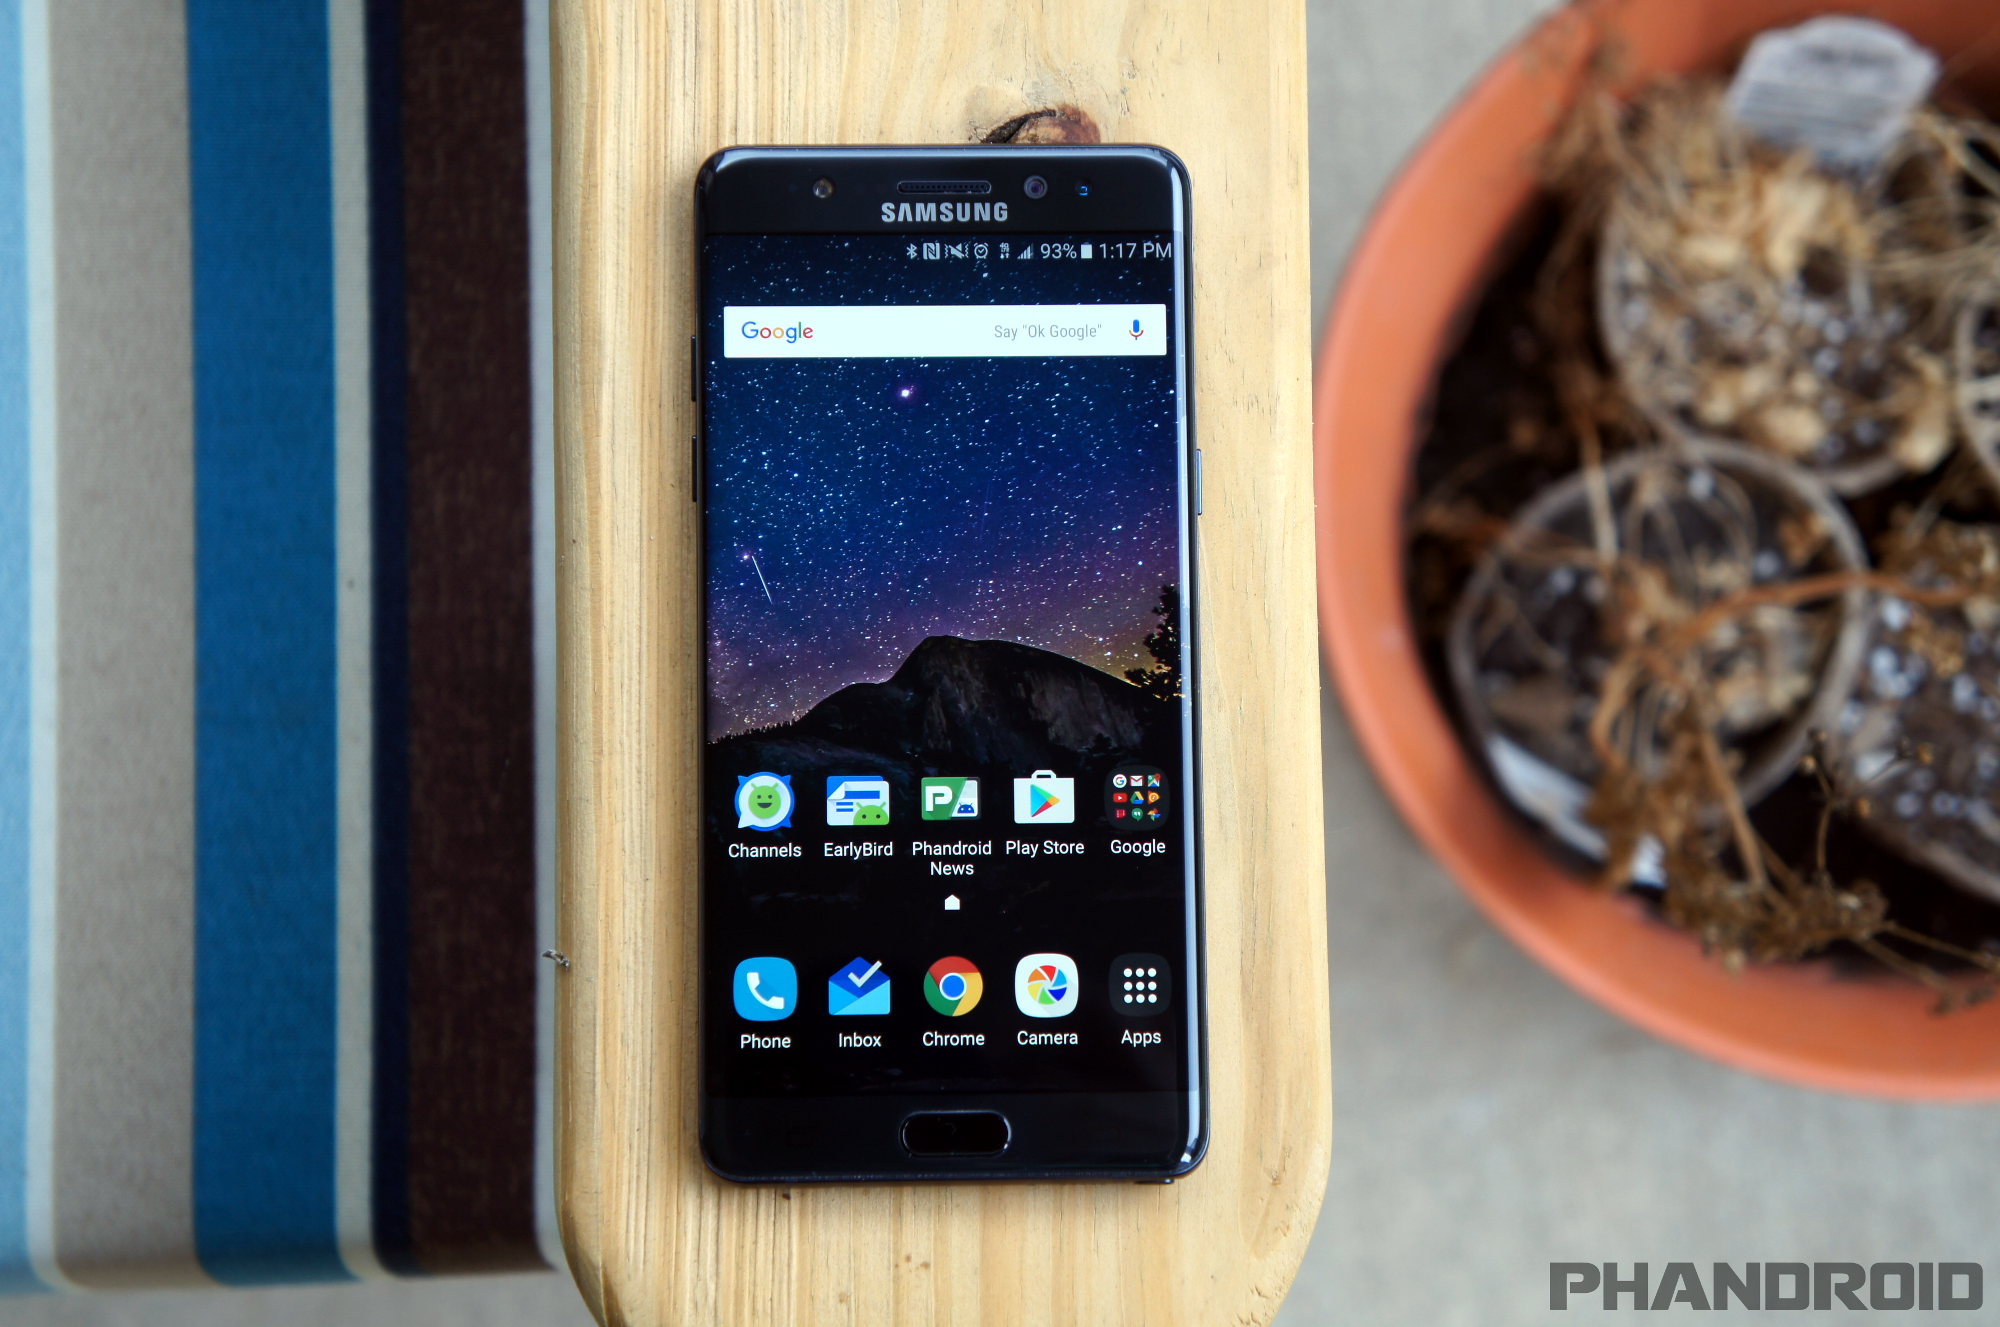 Samsung is being hit with a class action lawsuit over the